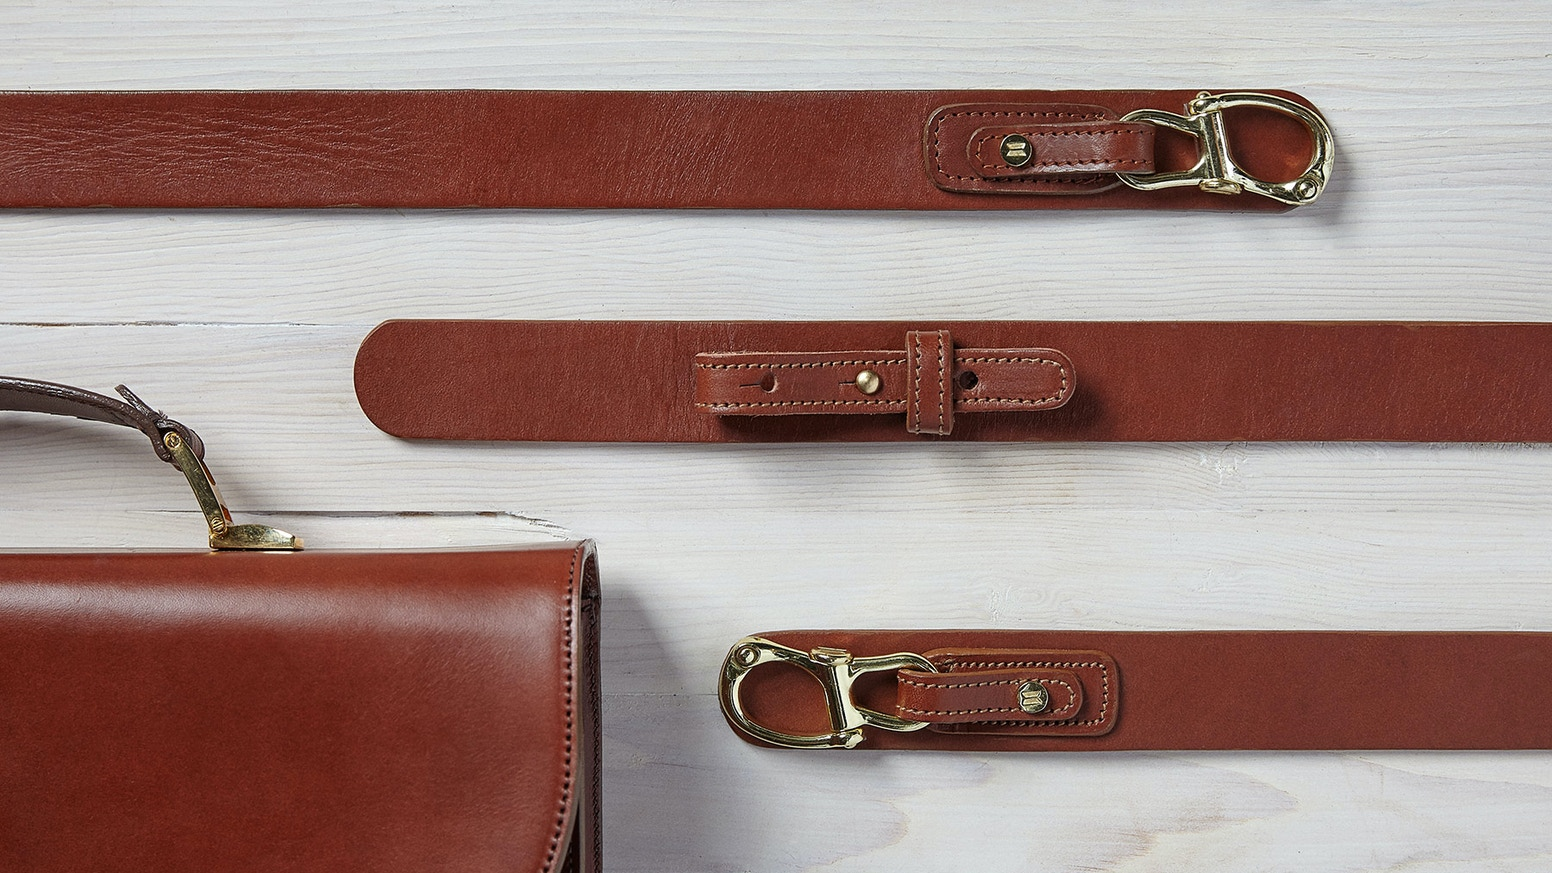 Jack Iron is a new line of nautically inspired leather accessories handcrafted in Brooklyn and headquartered in Lincoln, MA.